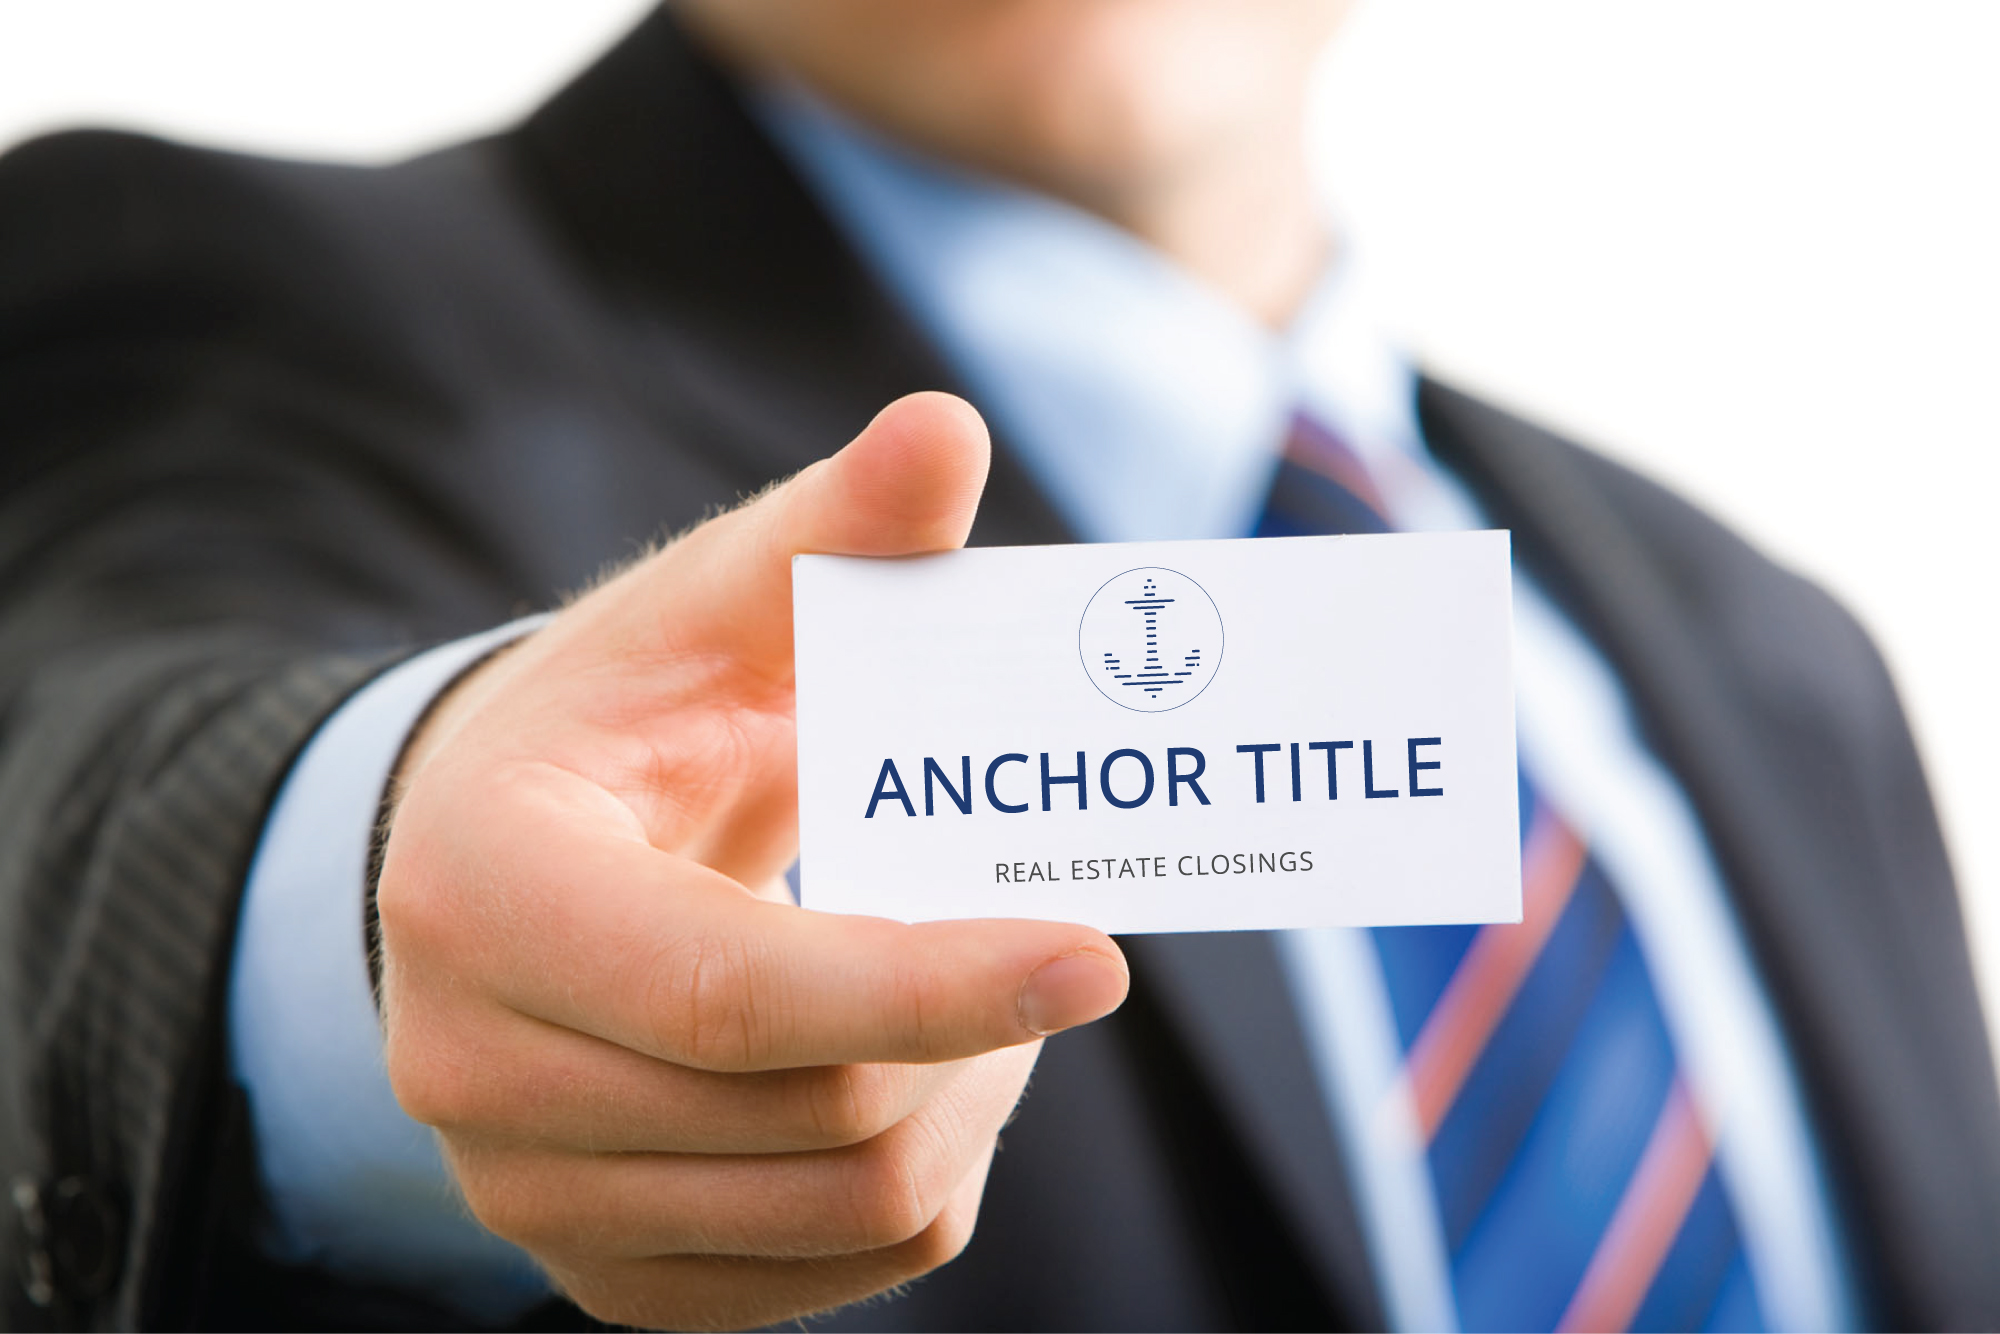 Anchor Title Florida Tennessee Real